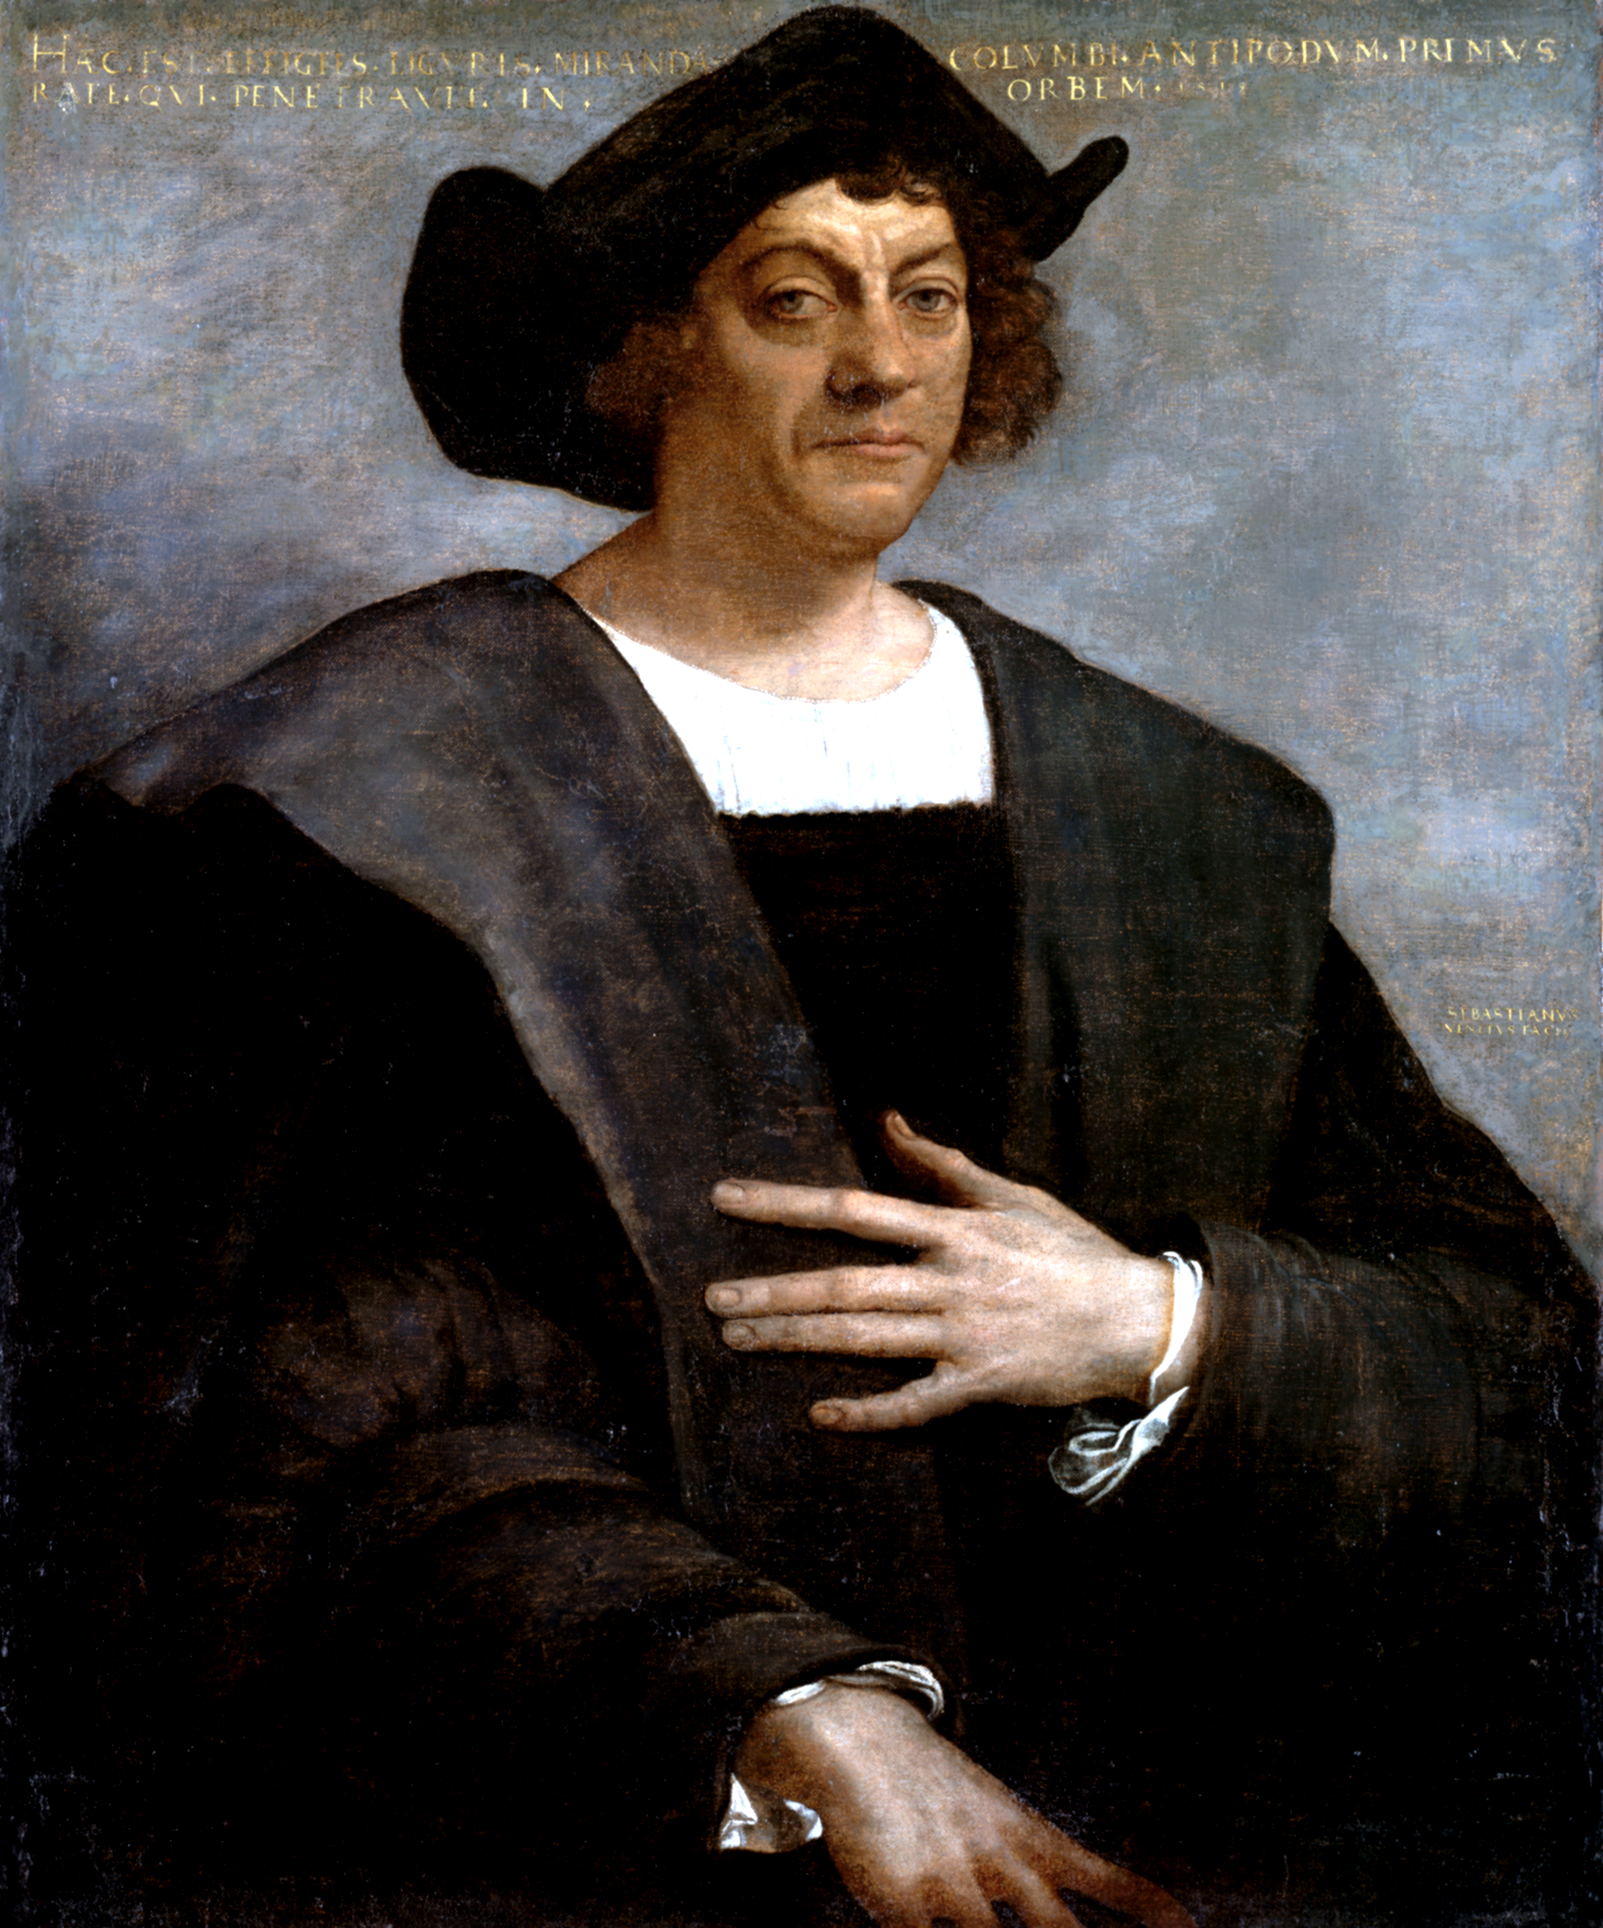 """WHOLE DUDE - WHOLE CREME: THE DISCOVERY OF """"WHOLE"""" LOVE. CHRISTOPHER COLUMBUS(1451-1506) IS RECOGNIZED FOR HIS DISCOVERY OF AMERICA ON OCTOBER 12, 1492. ON WEDNESDAY, JULY 30, 2014, I AM FORMALLY SEEKING RECOGNITION FOR DISCOVERING THE MEANING OF """"WHOLE LOVE."""""""